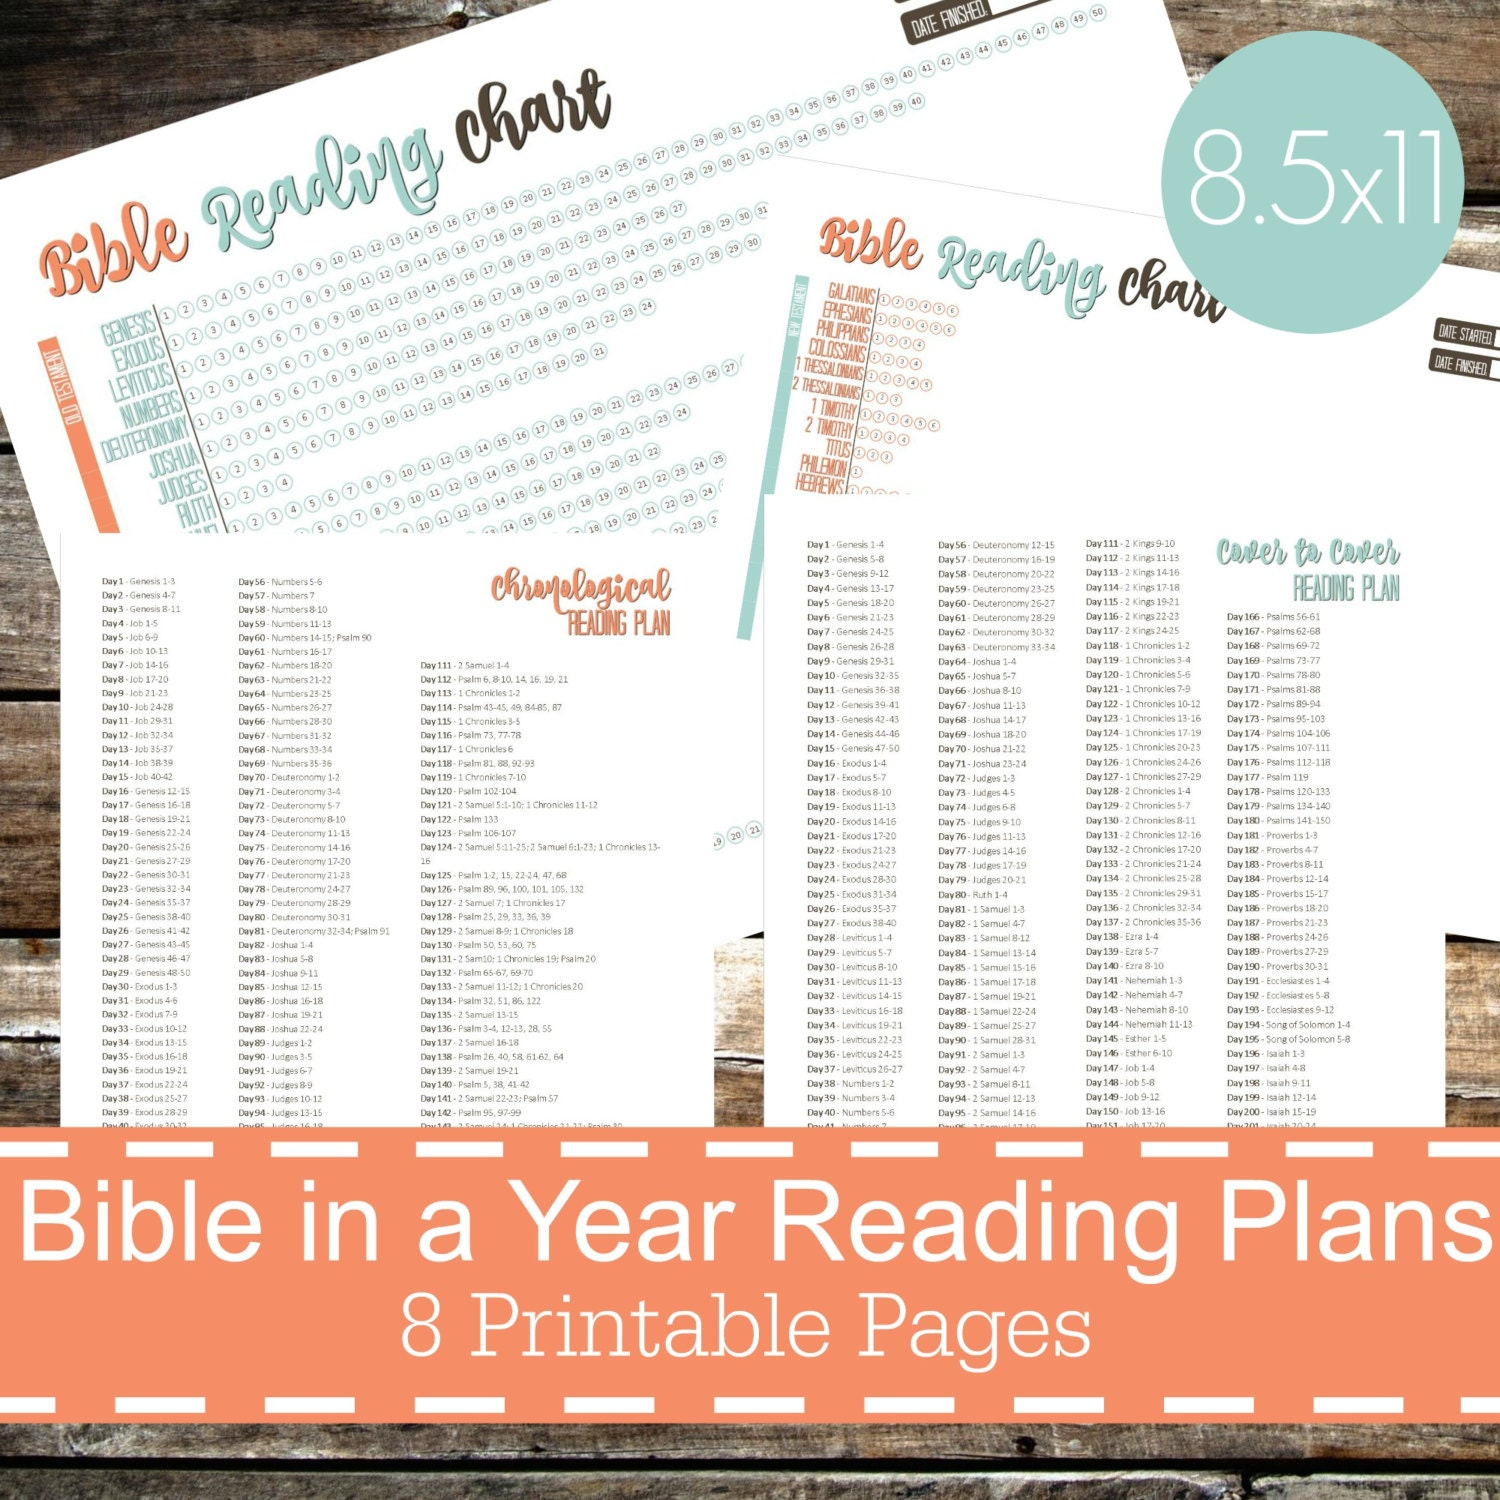 This is a picture of Geeky Printable Bible Reading Plans